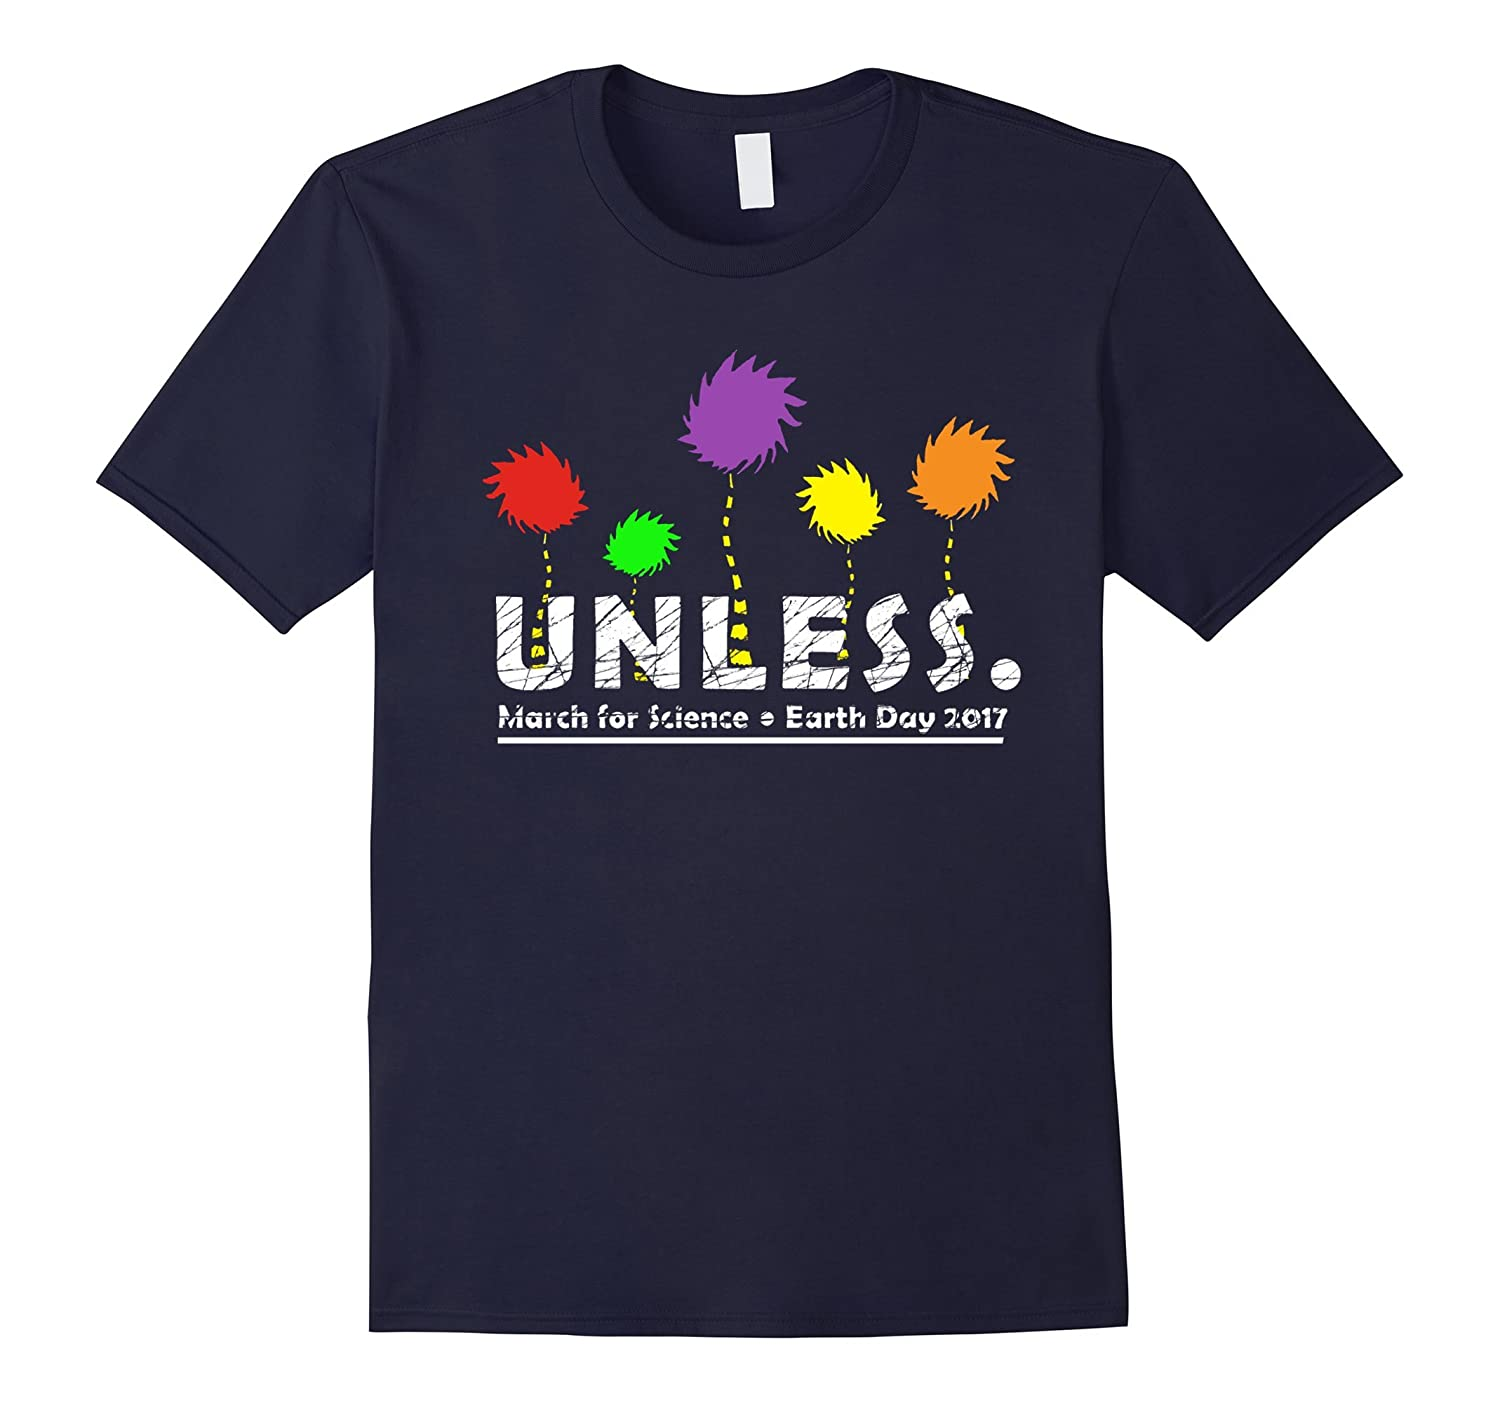 Unless March for Science Earth Day 2017 Cool Shirts-TD